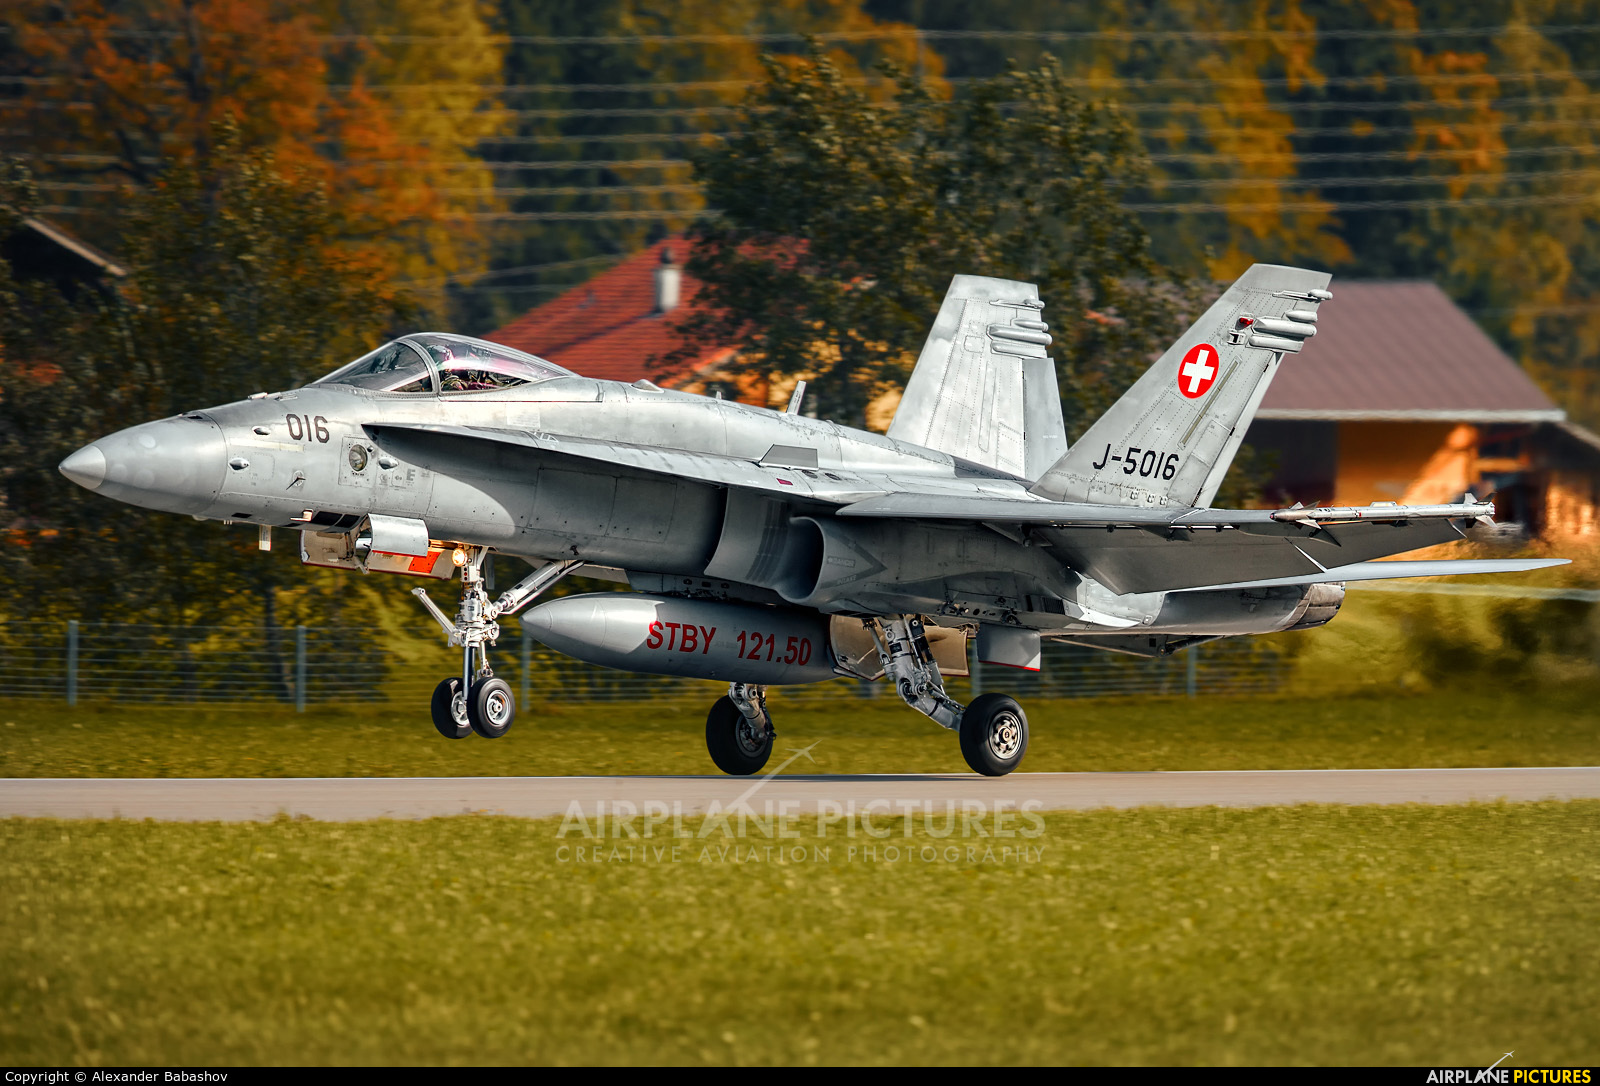 Switzerland - Air Force J-5016 aircraft at Meiringen